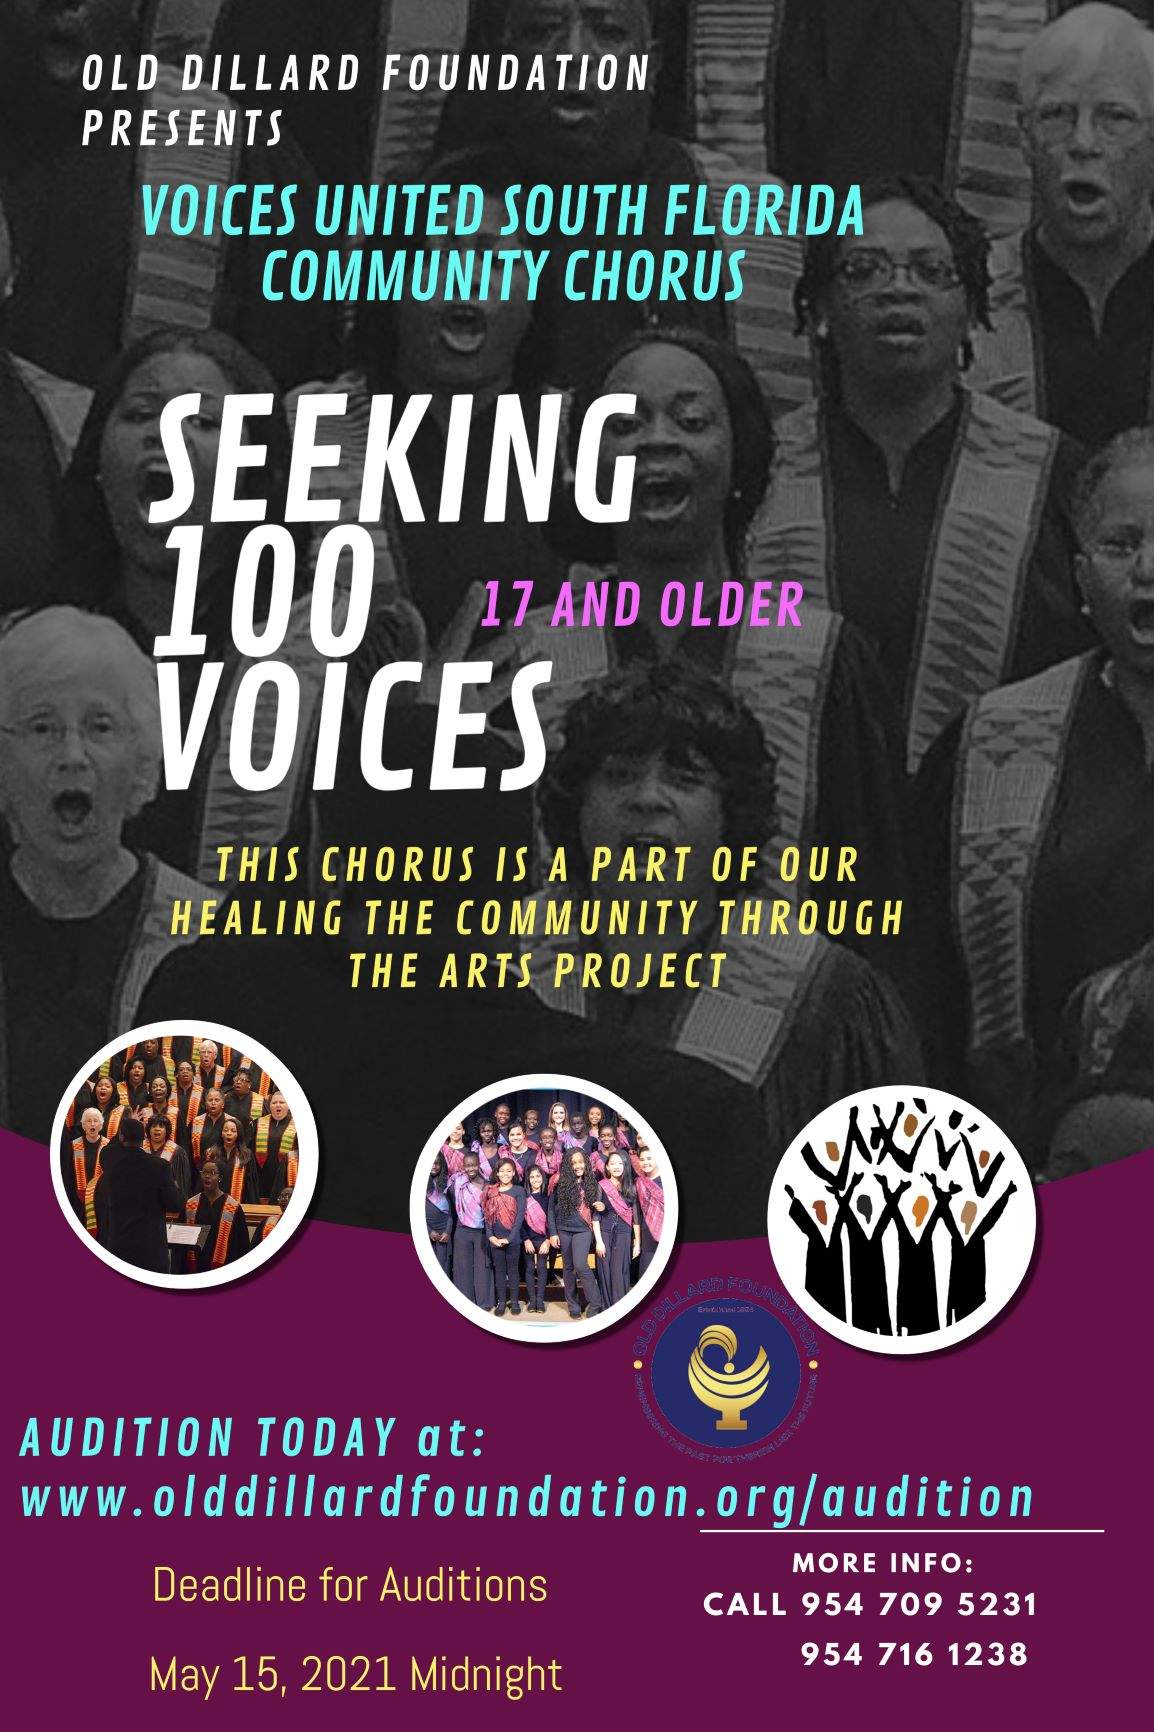 Old Dillard Foundation wants your voice